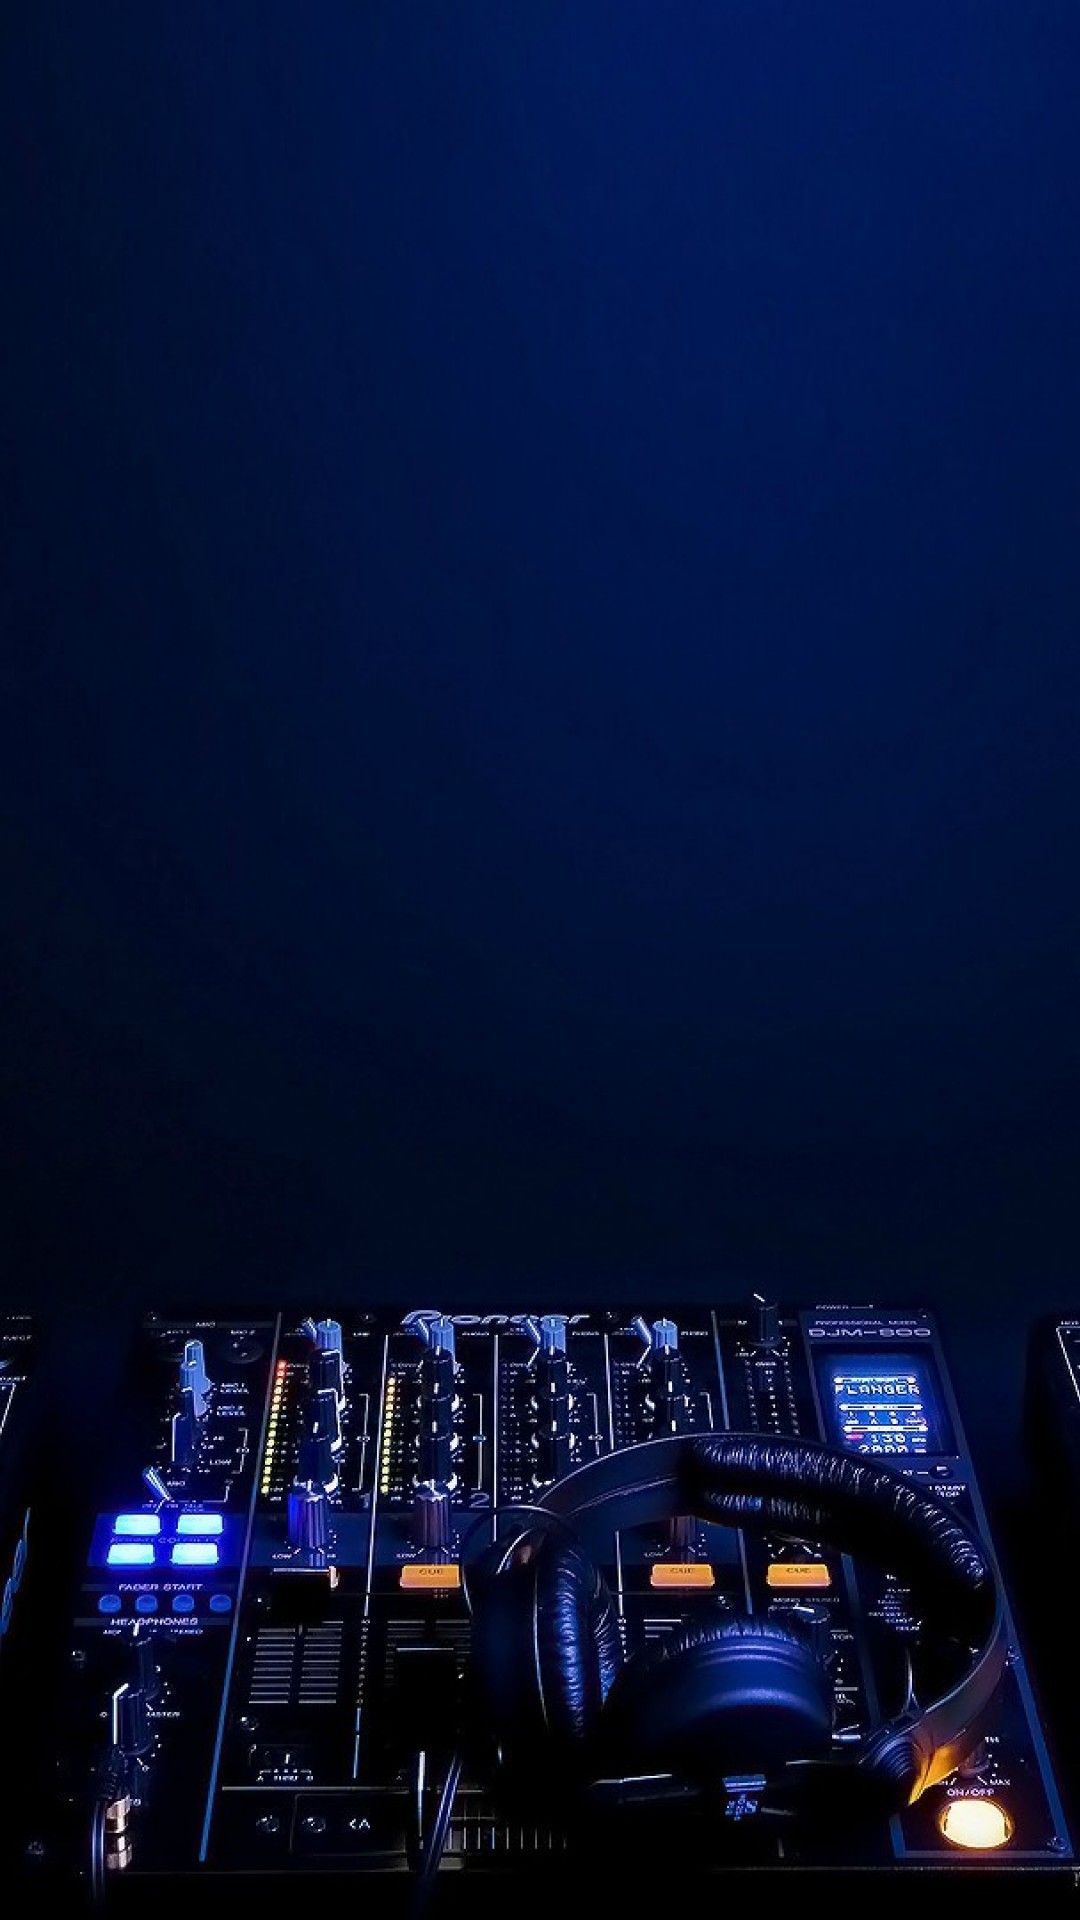 House music DJ decks HD Wallpaper